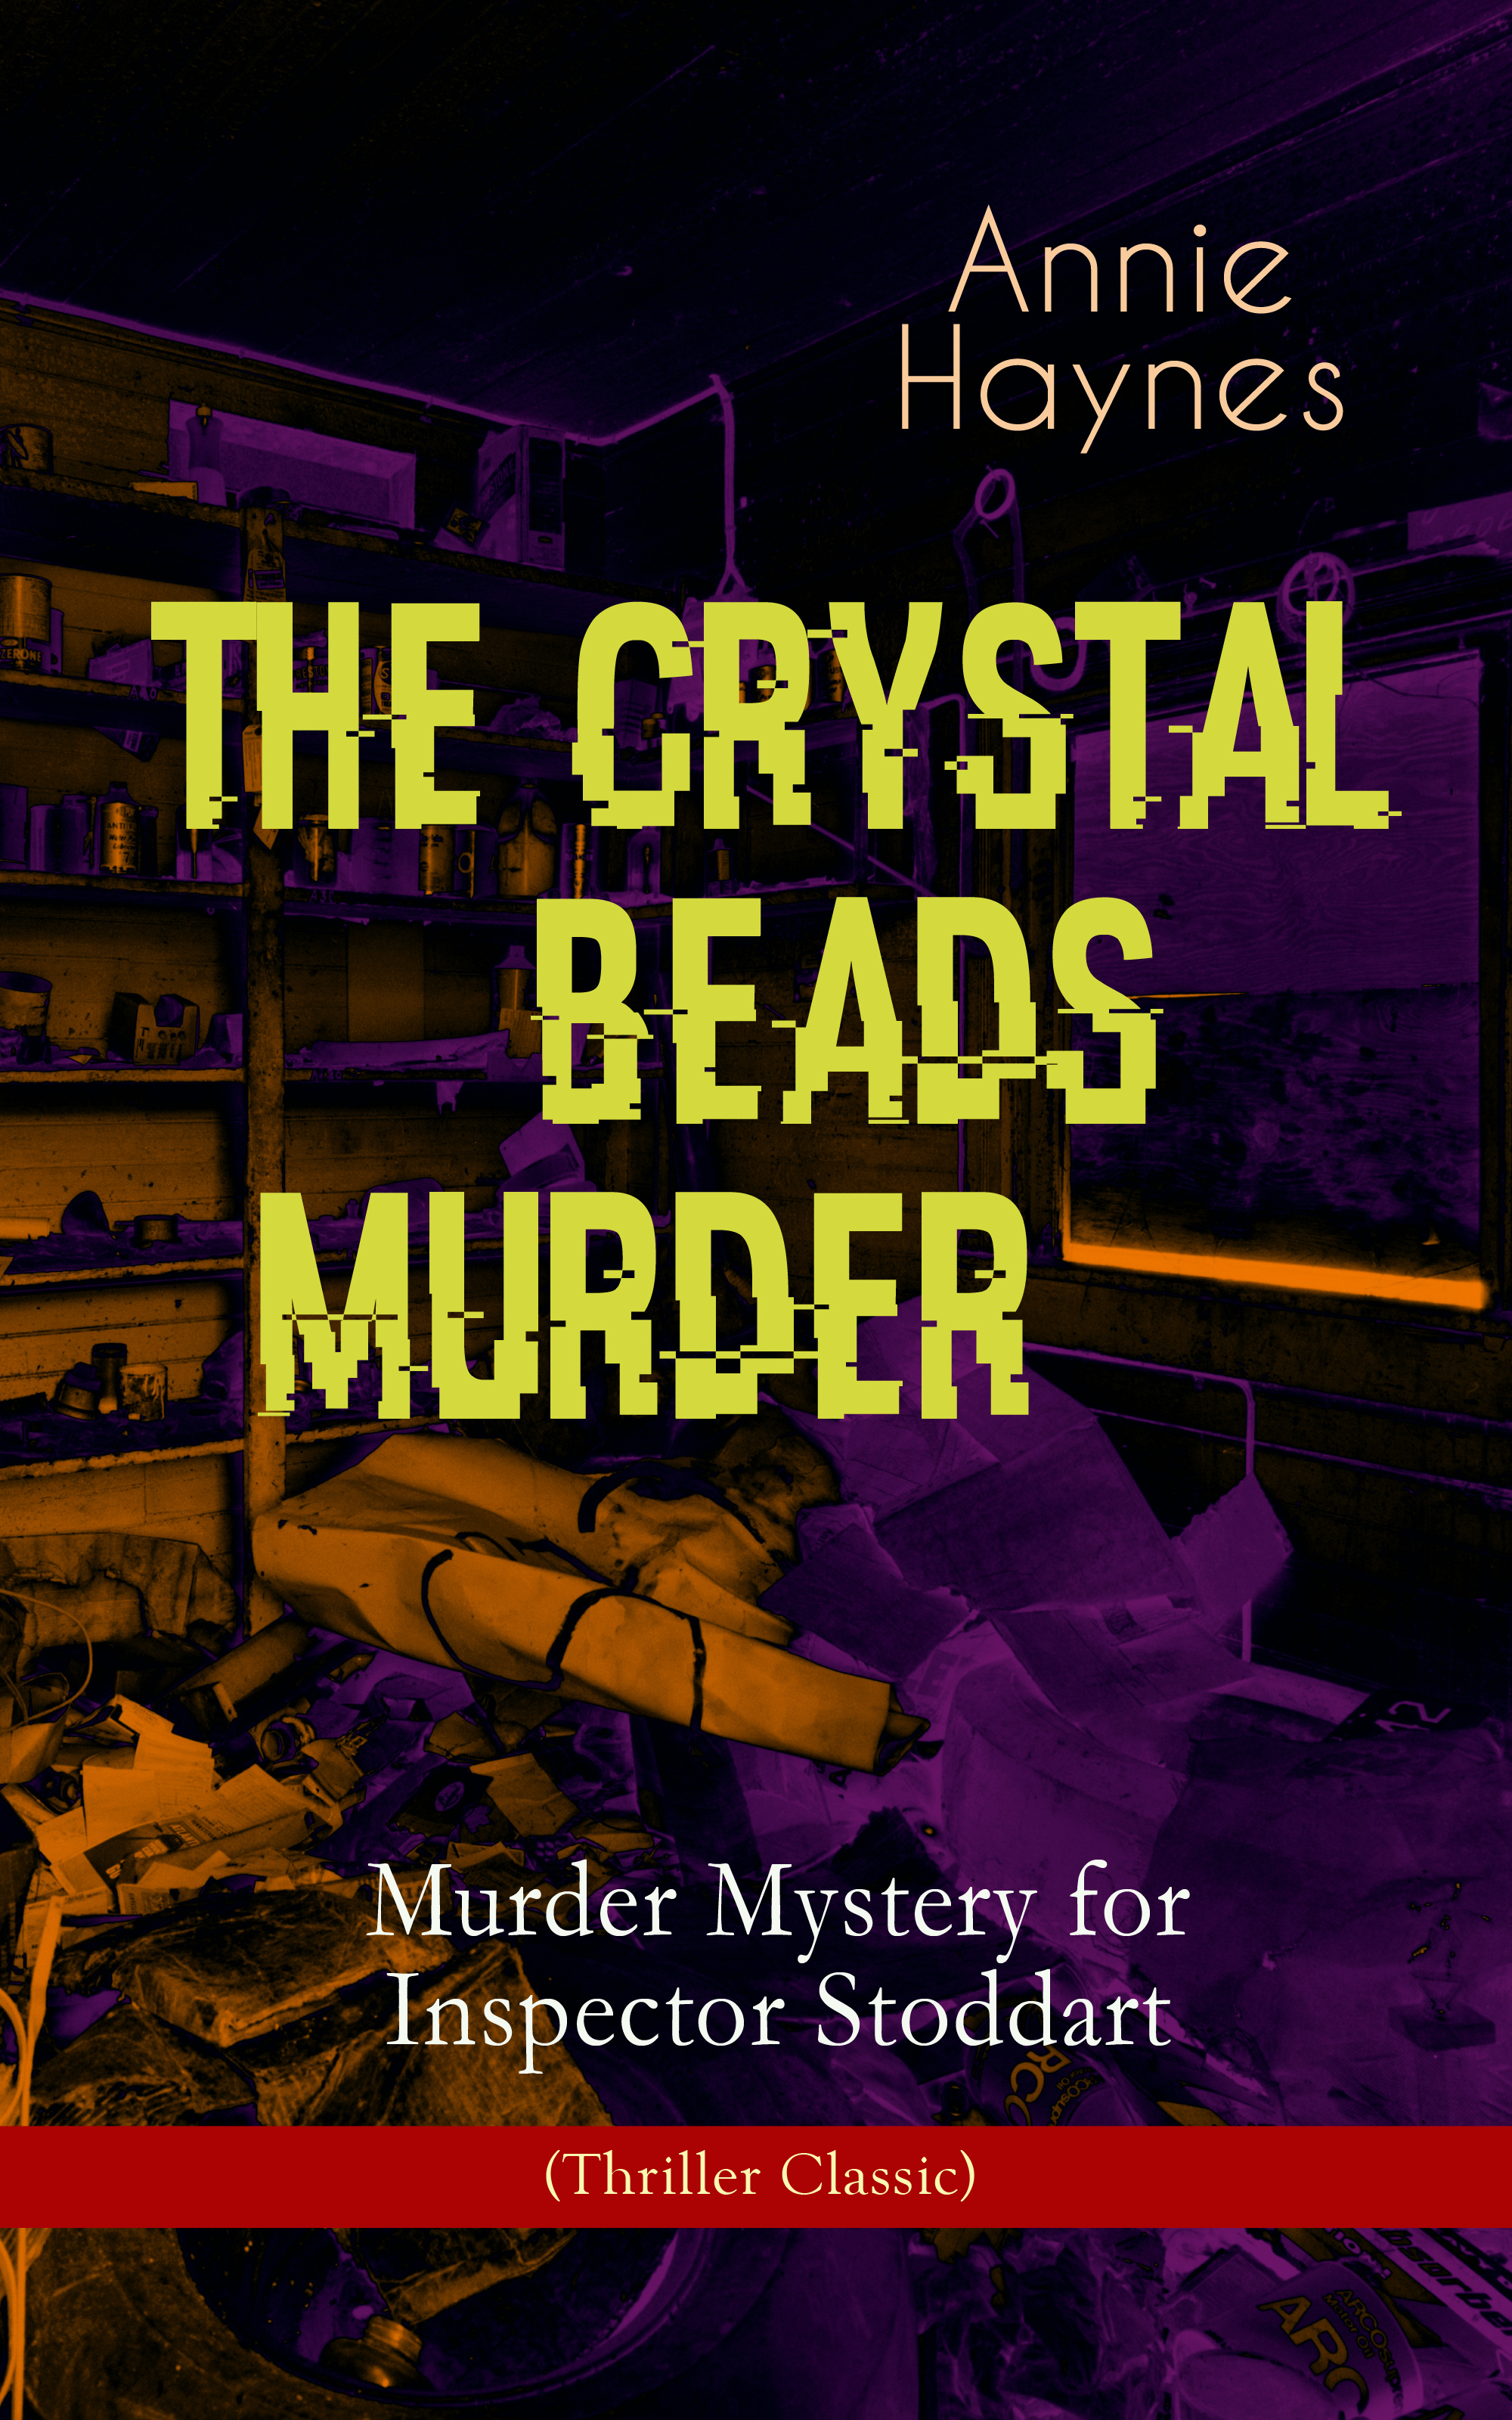 Annie Haynes THE CRYSTAL BEADS MURDER – Murder Mystery for Inspector Stoddart (Thriller Classic)